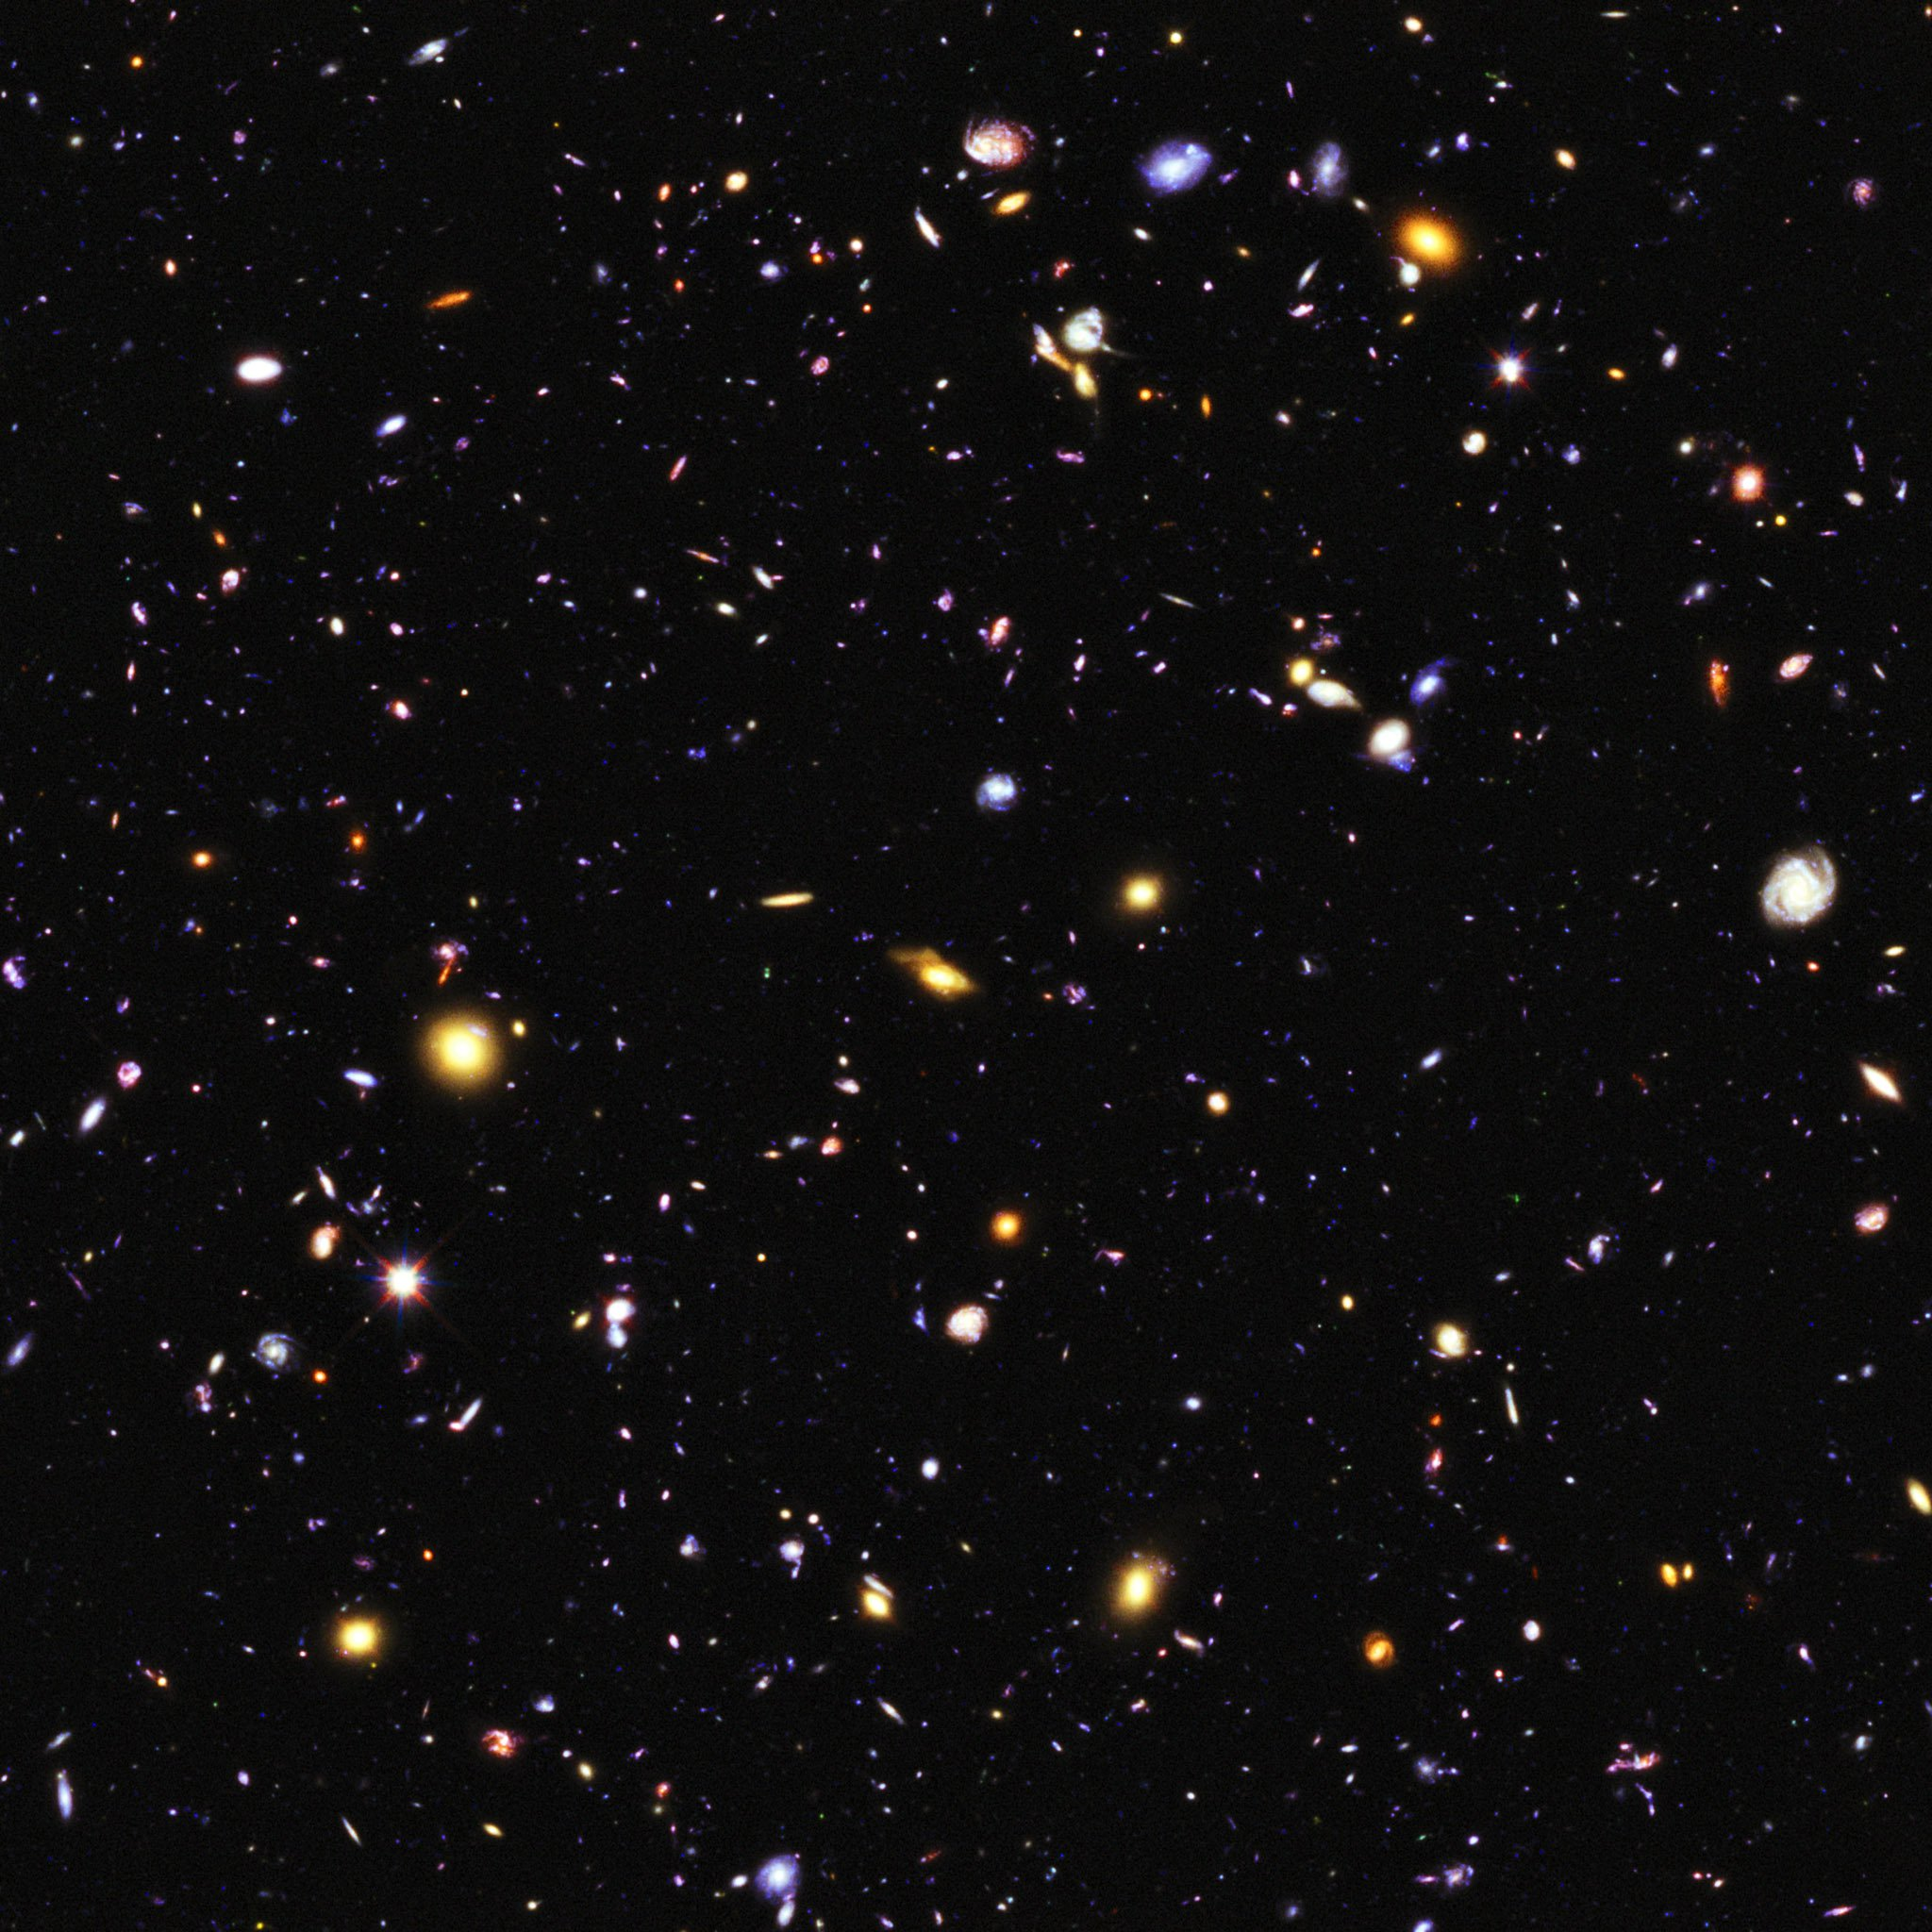 hubble deep field hd wallpaper - photo #22